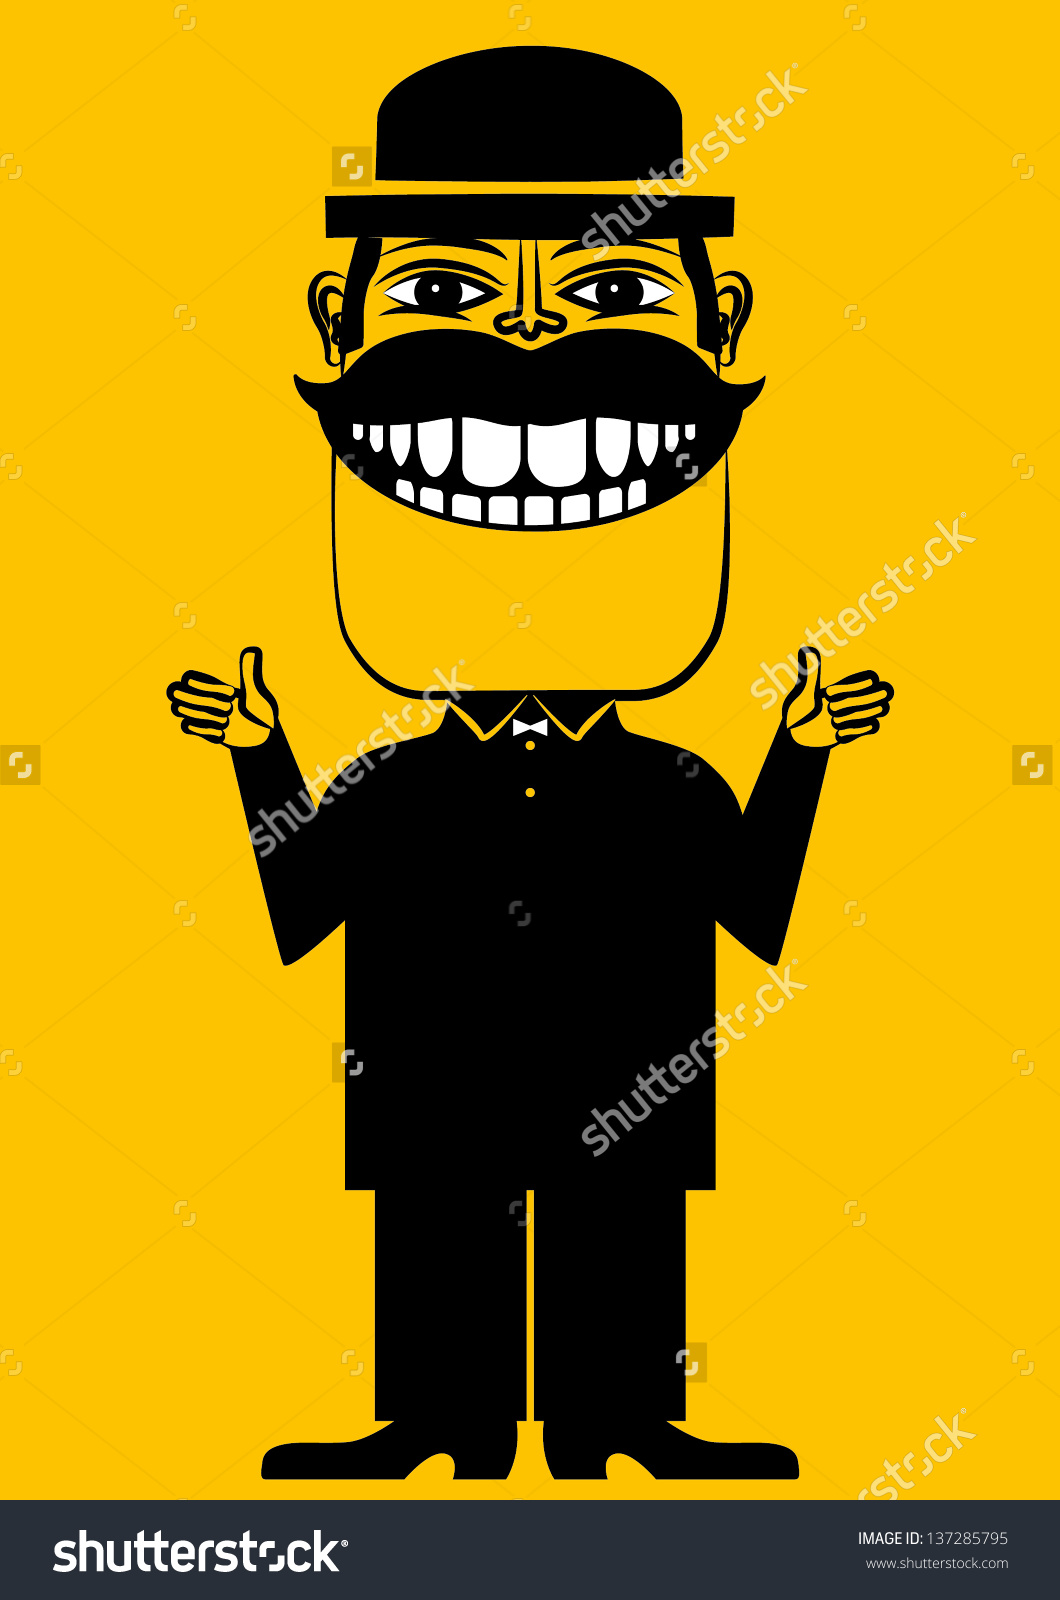 Clipart man with big smile vector royalty free A Cartoon Funny Illustration Of A Man In A Hat With A Big Smile ... vector royalty free